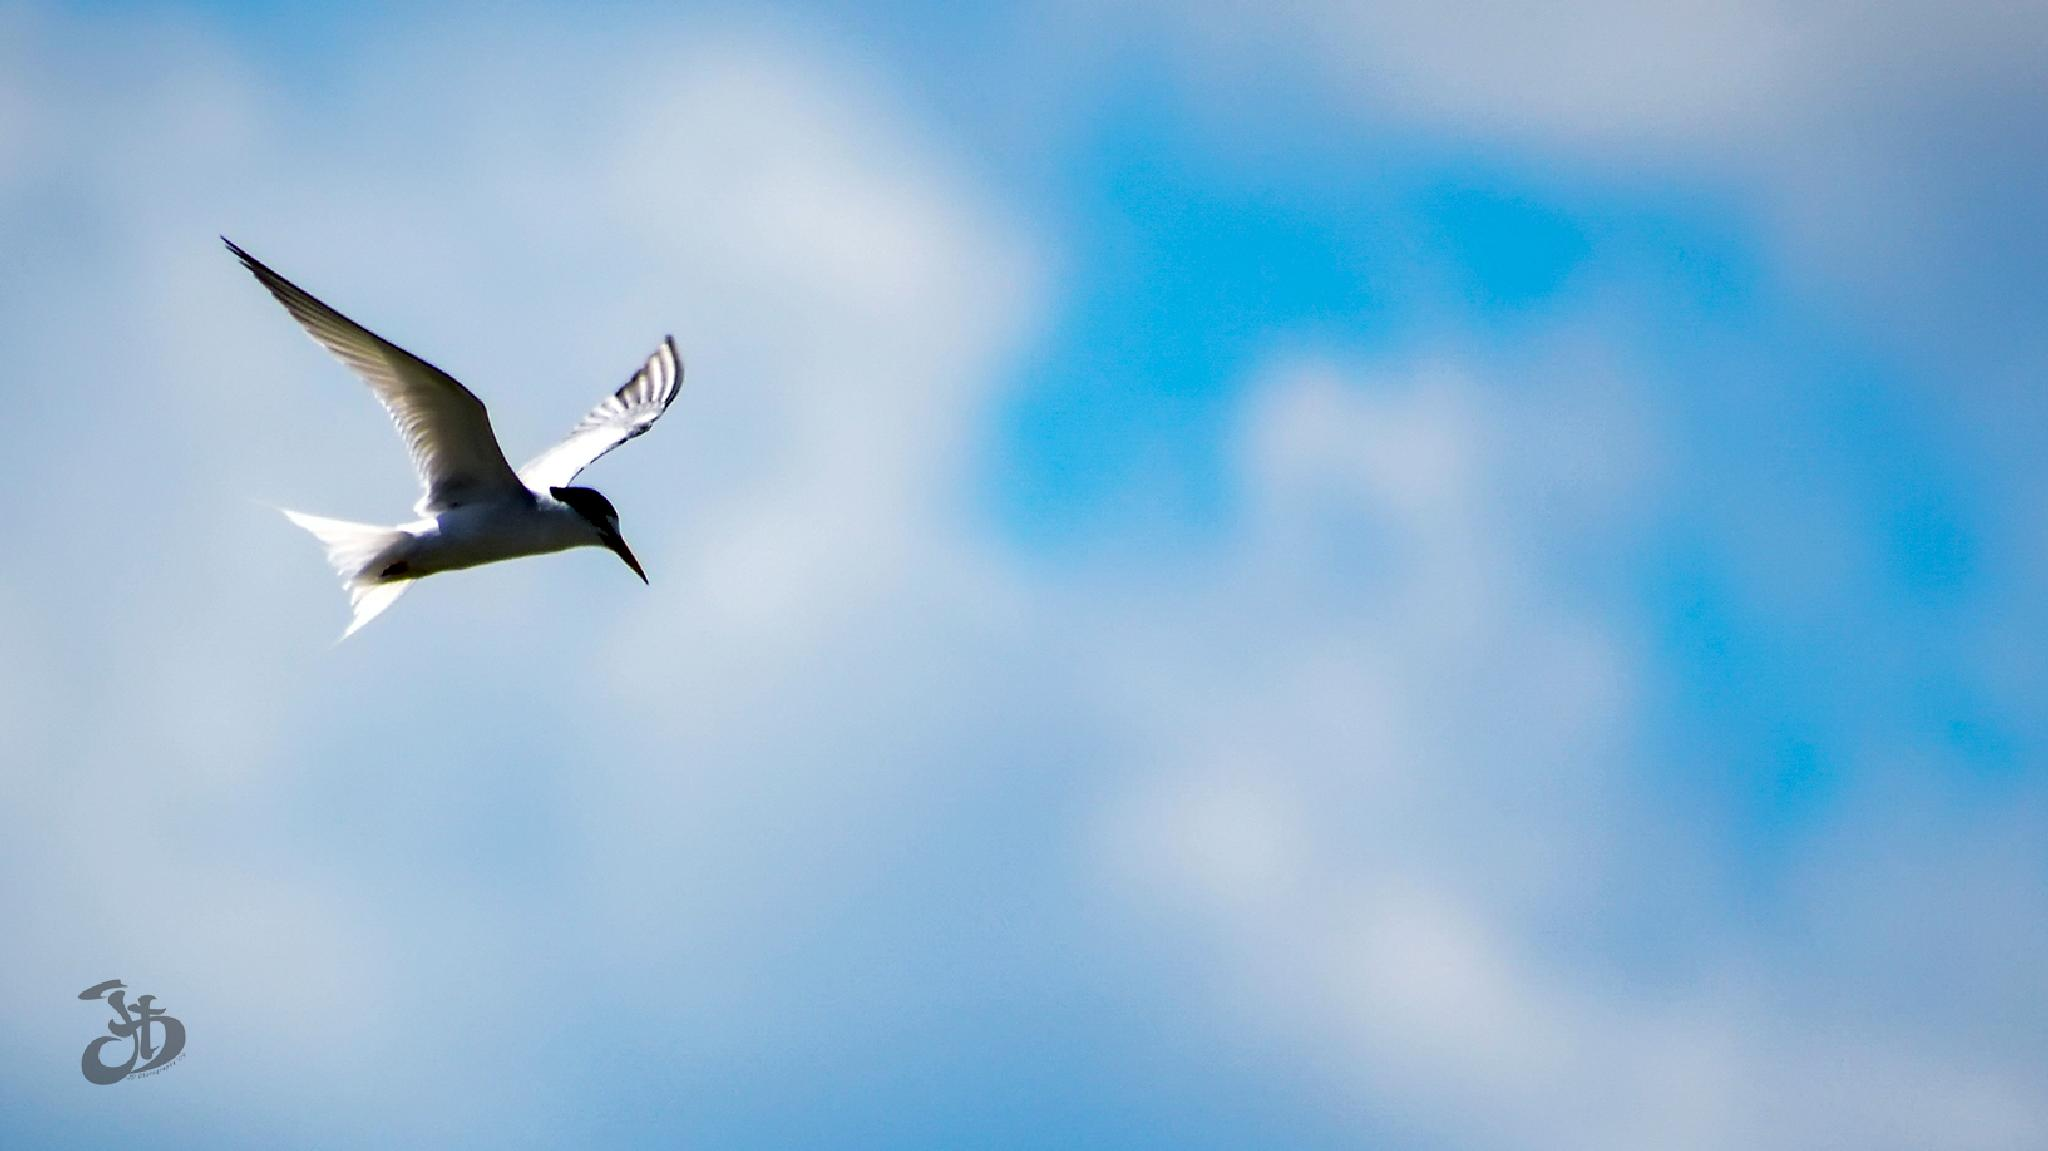 FLYING IN THE SKY by Jukhie Damak